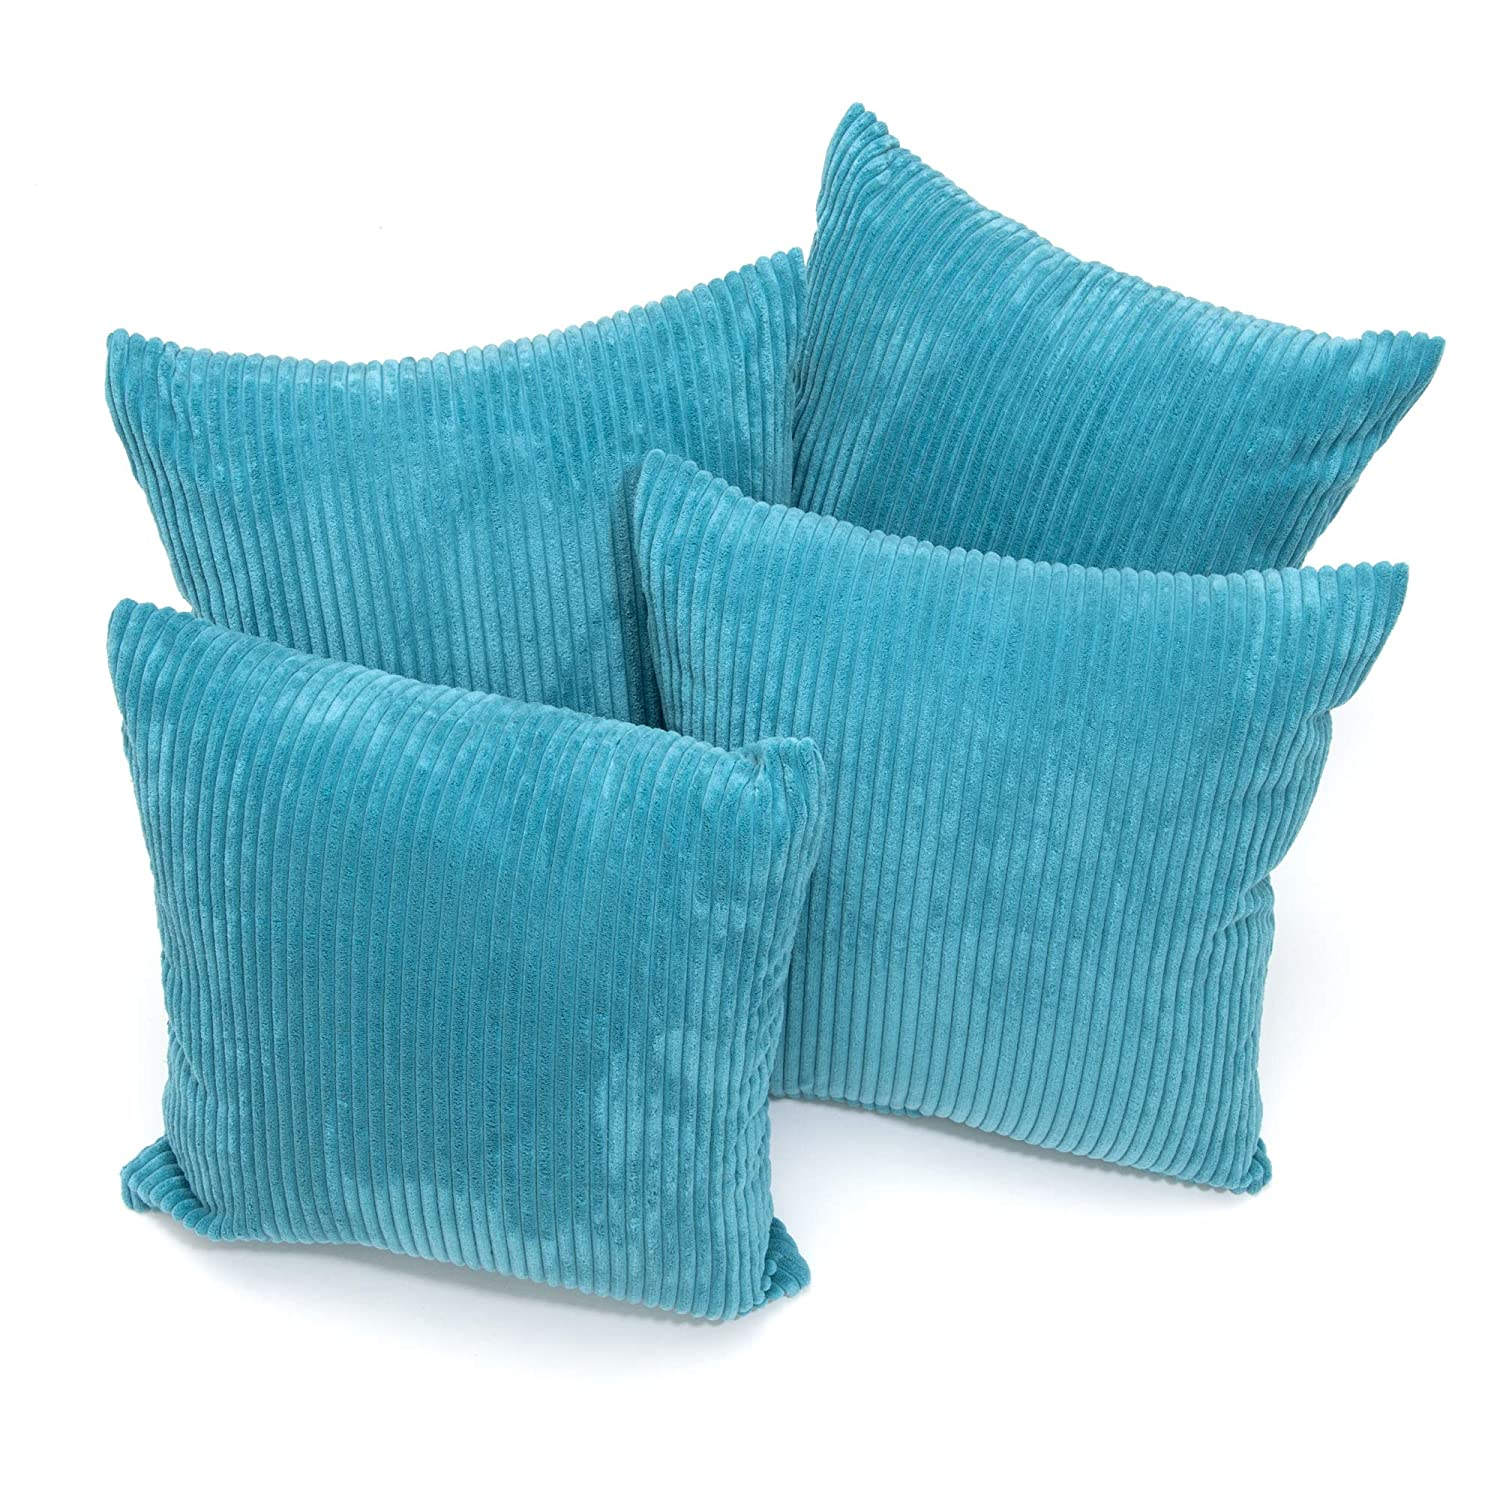 A Set of Four 18in x 18in Chenille Stripe Cushion Covers in Teal CB Home